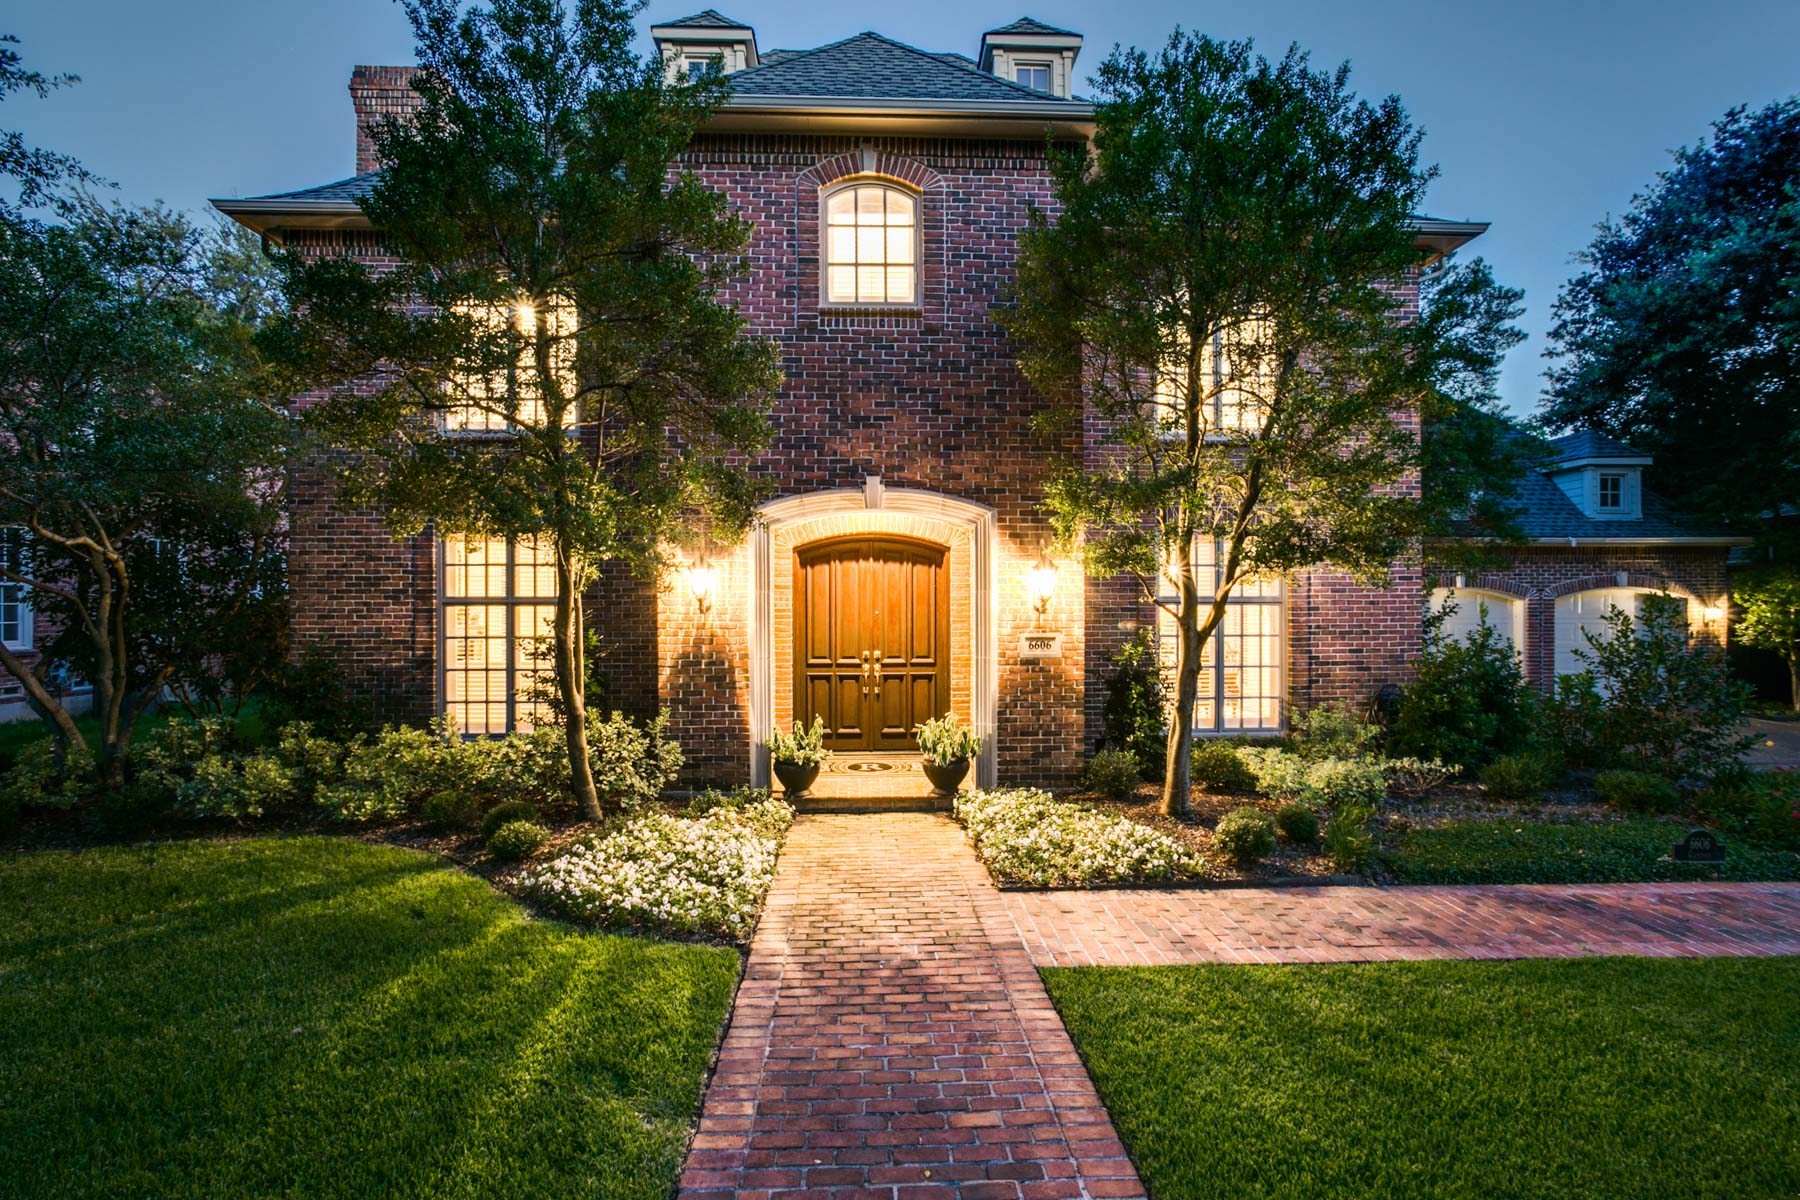 Vivienda unifamiliar por un Venta en Charming Preston Hollow Traditional 6606 Glendora Ave Dallas, Texas, 75230 Estados Unidos